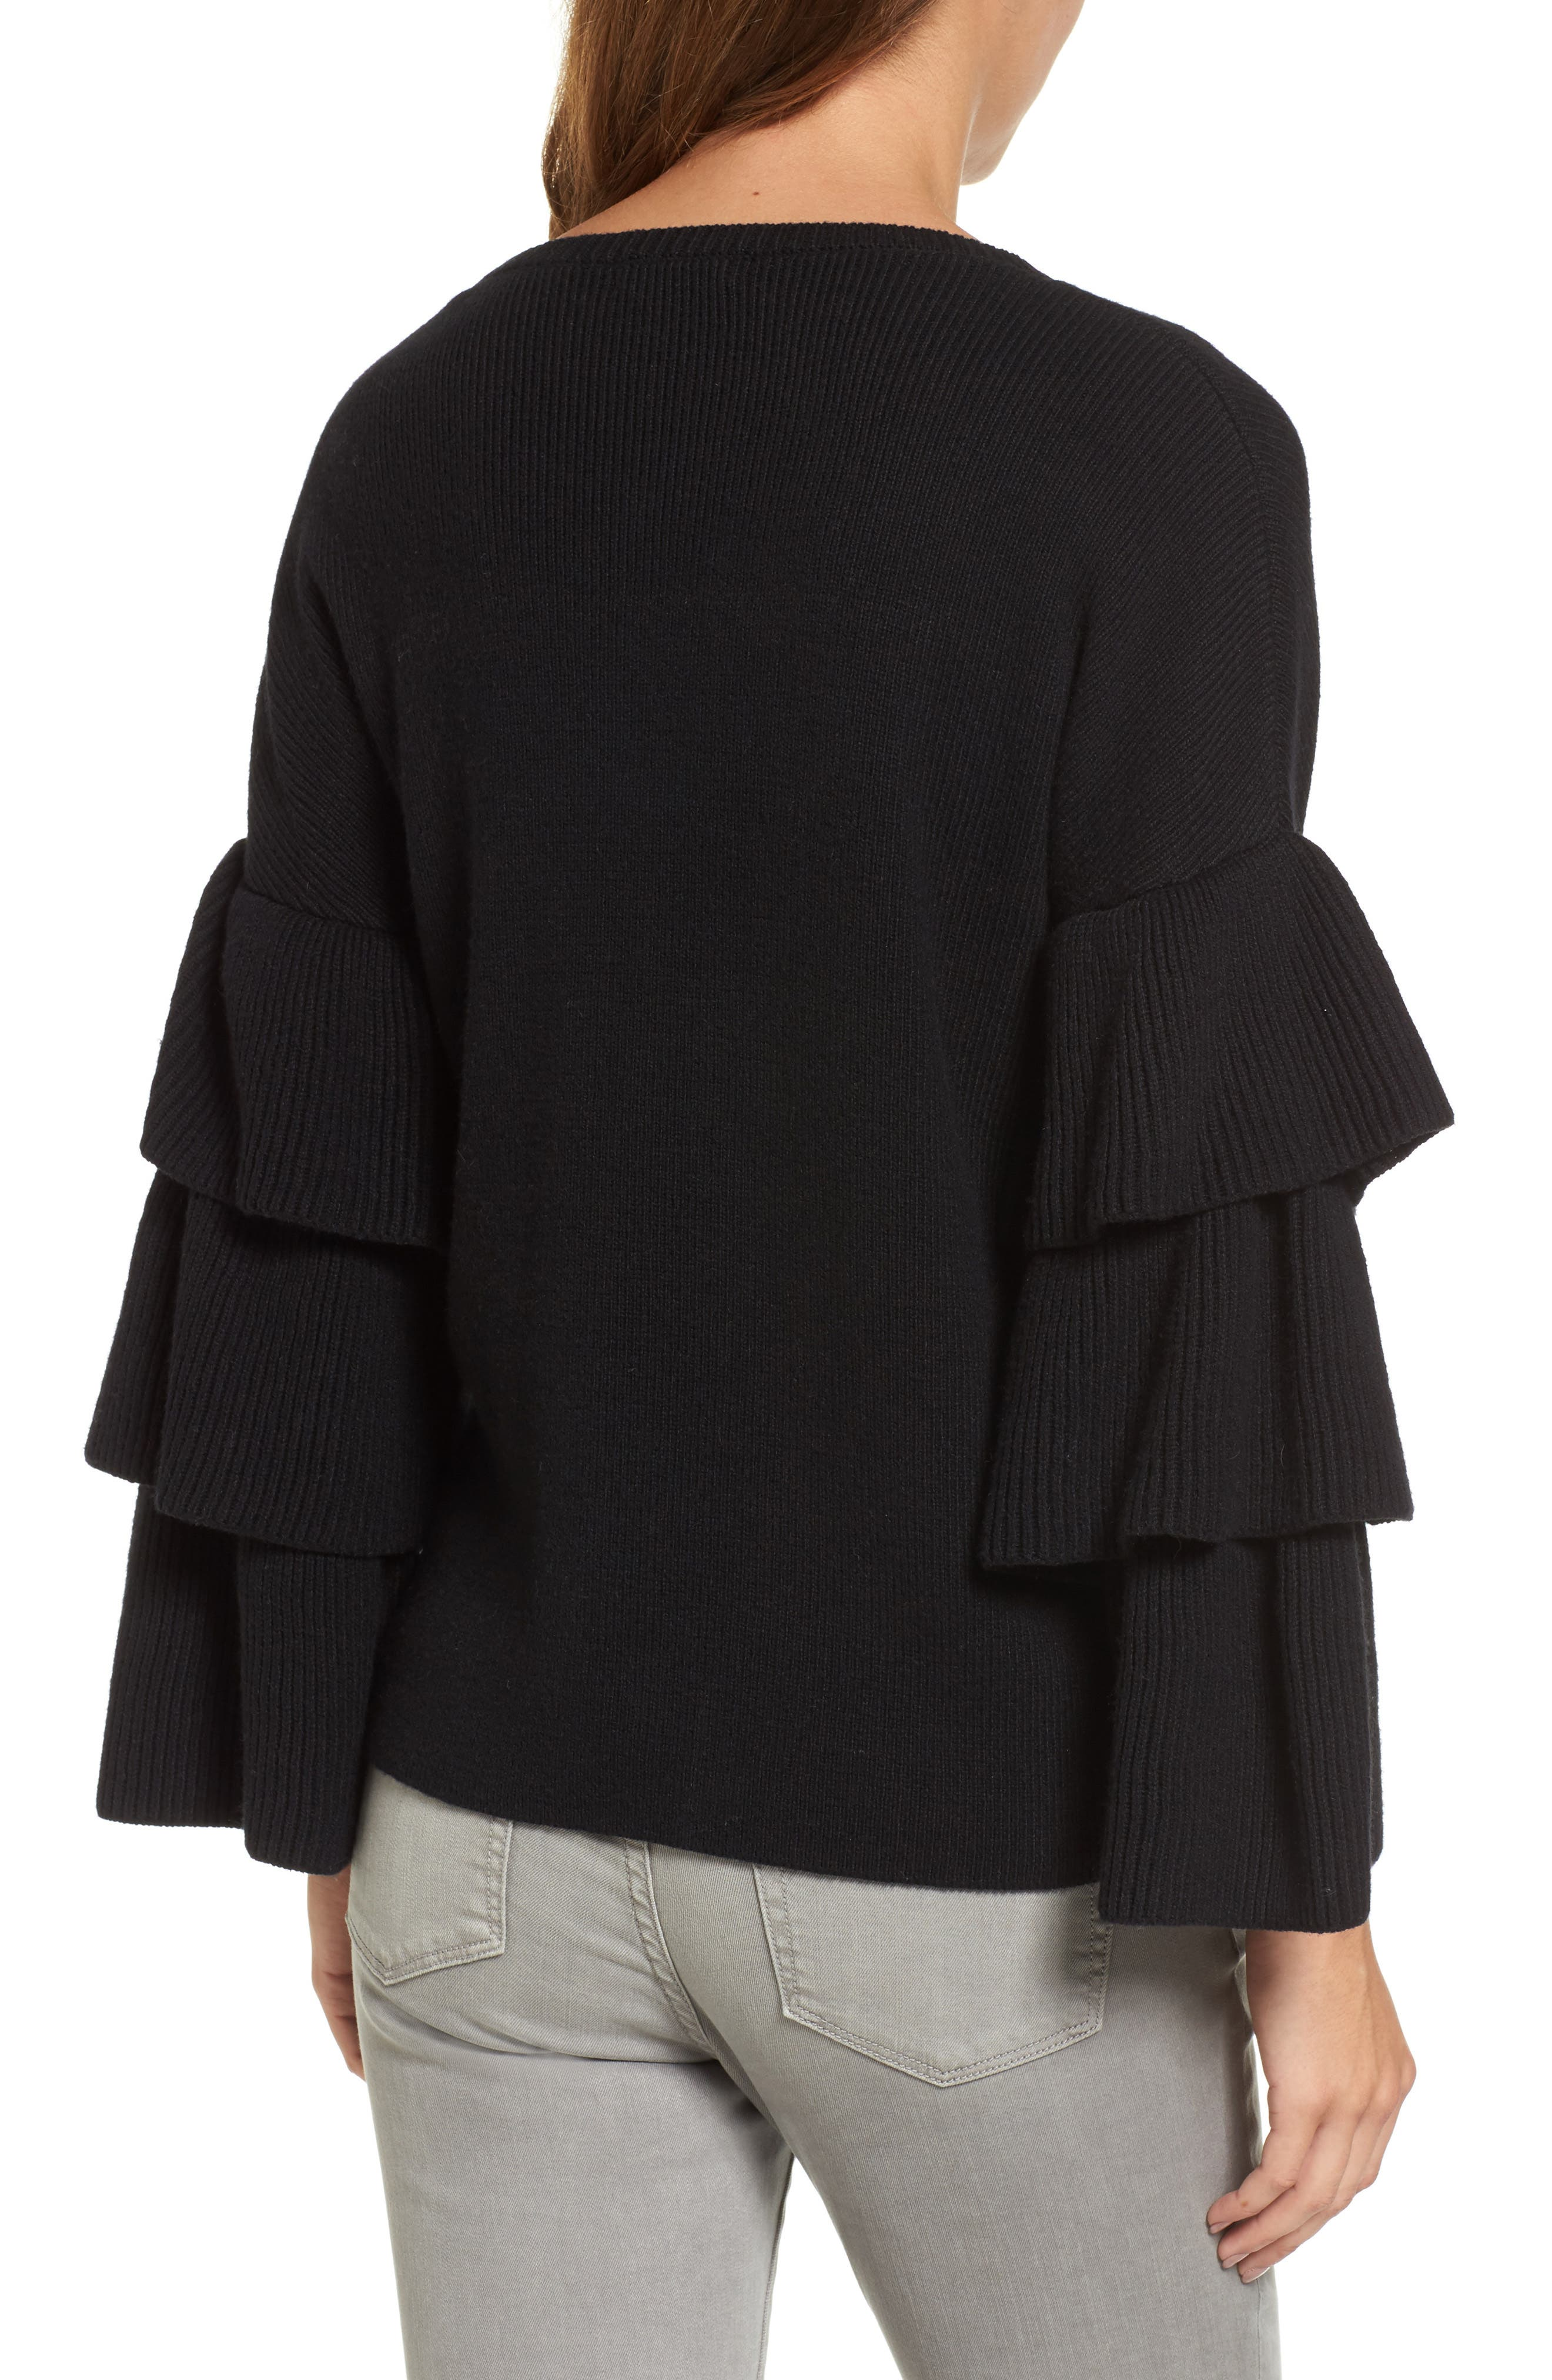 Ruffle Sleeve Sweater,                             Alternate thumbnail 2, color,                             001